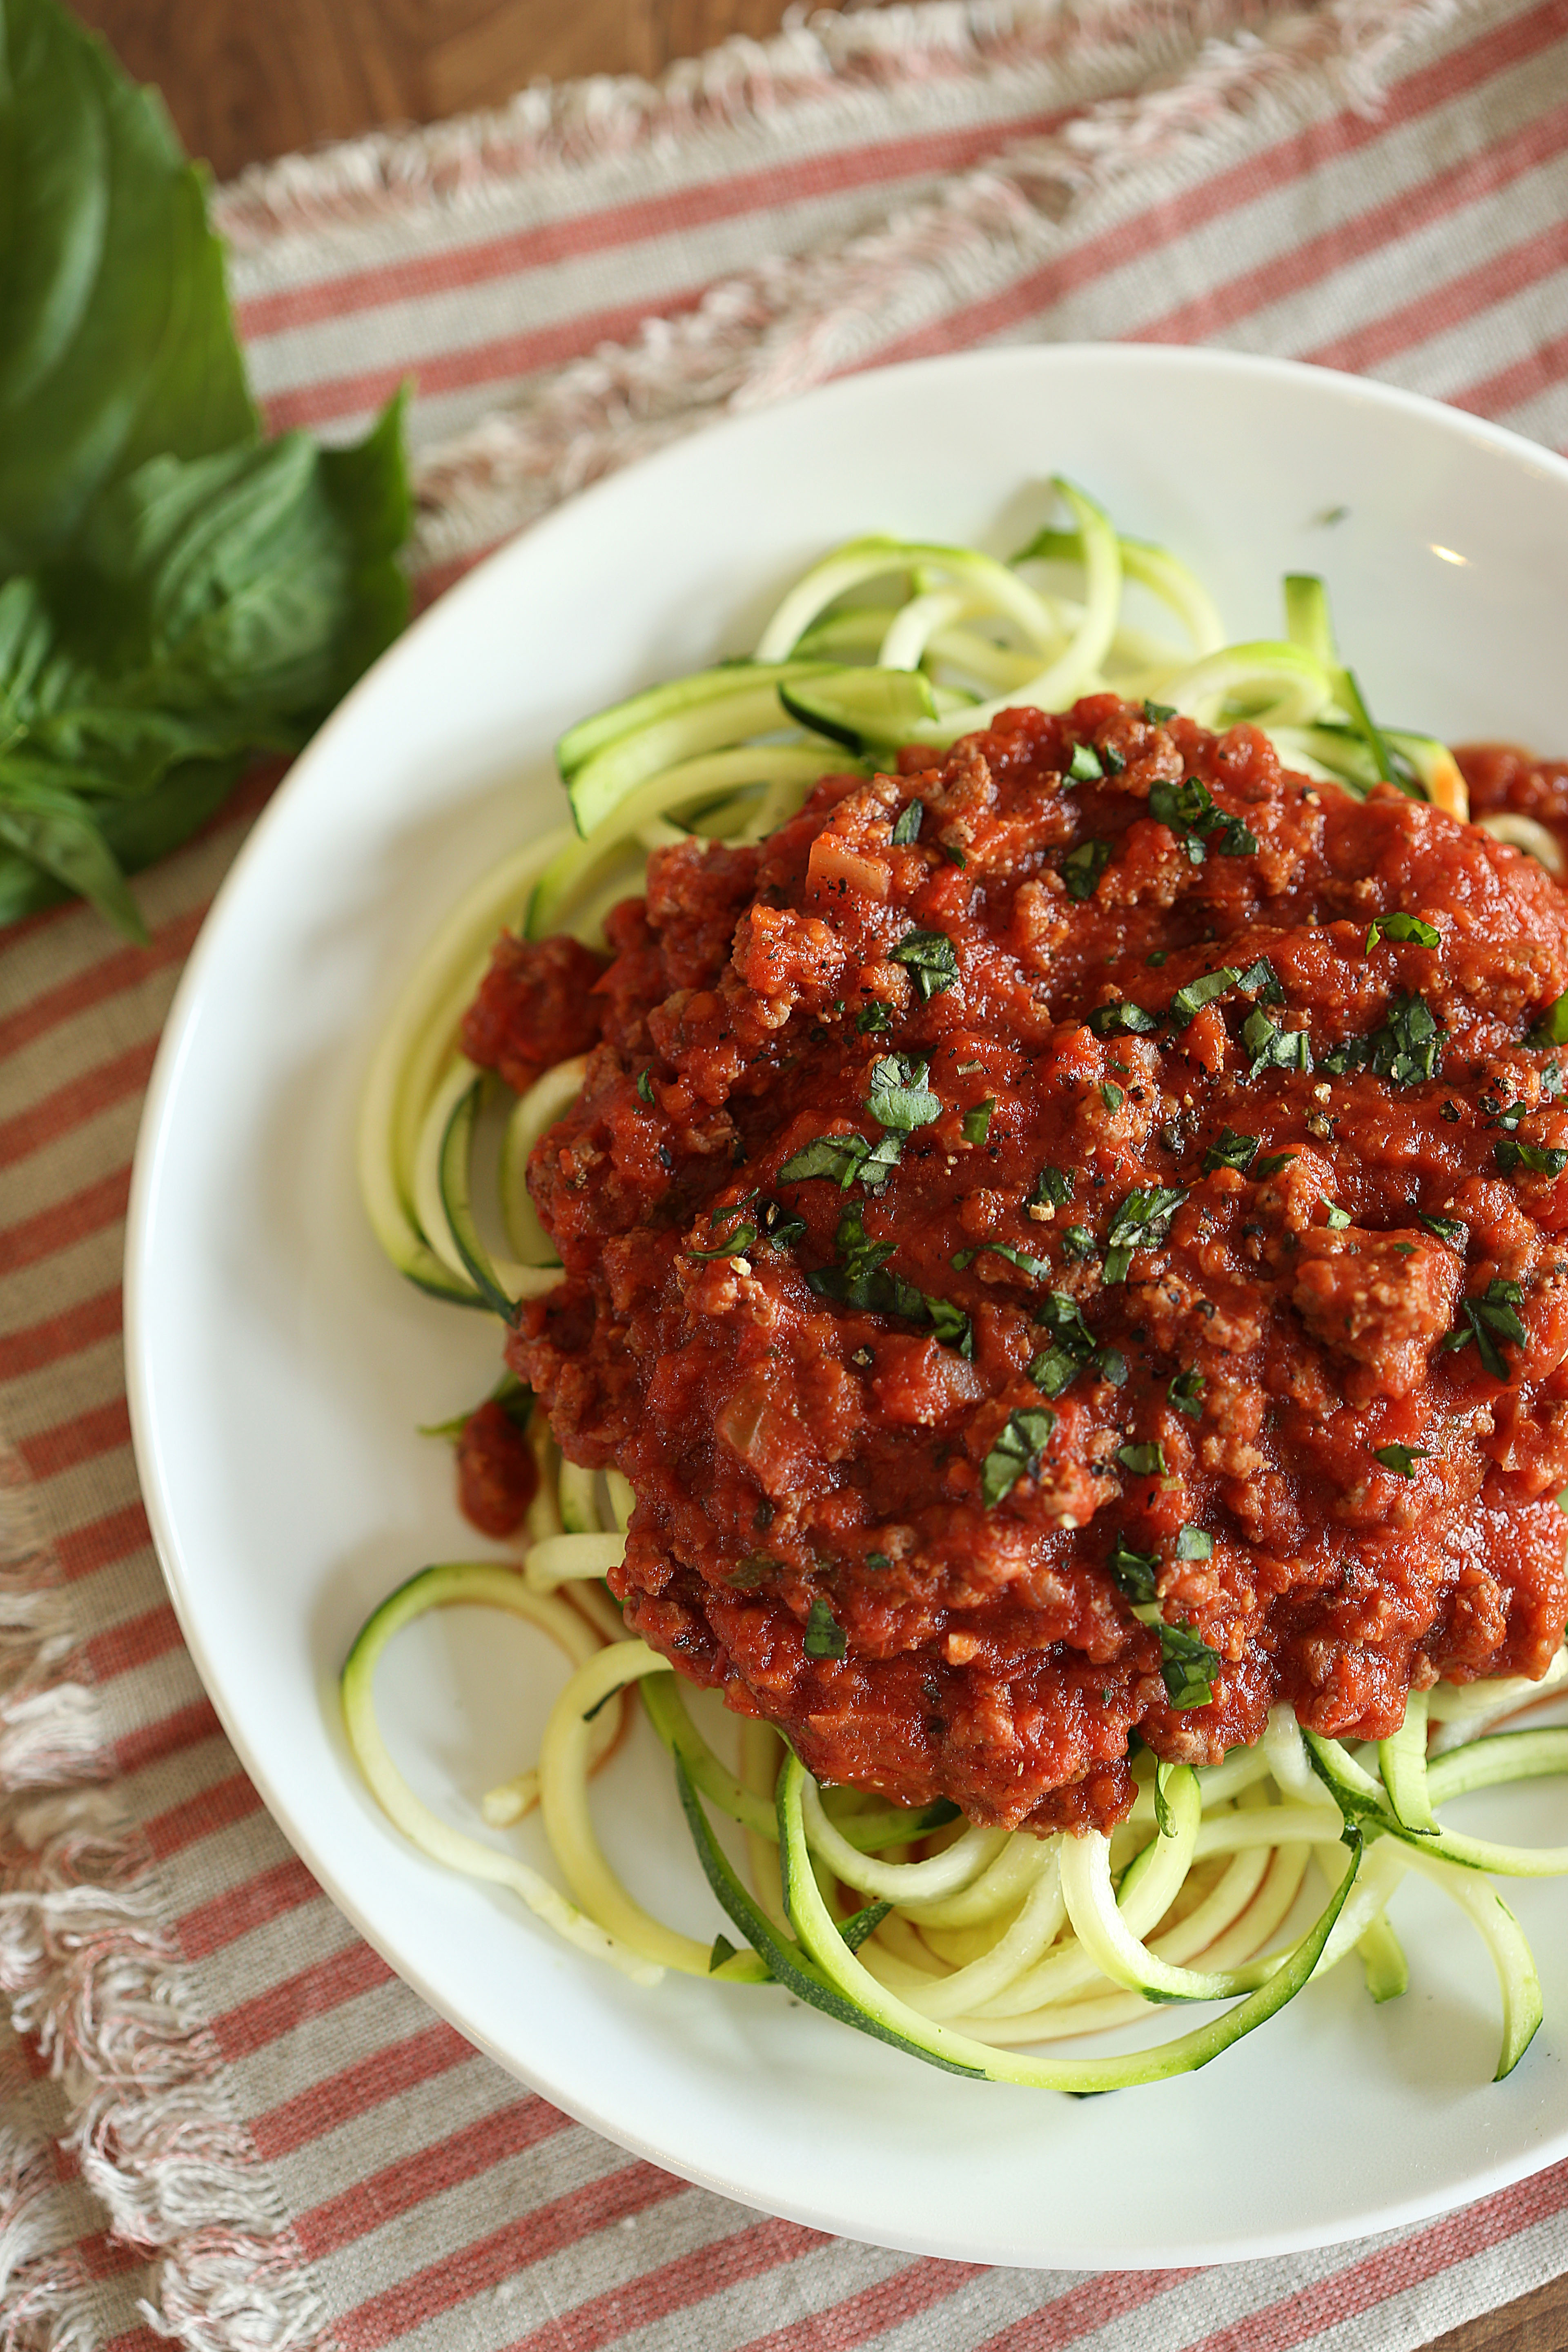 Zucchini Noodles with Simple Bolognese SauceEat Yourself Skinny